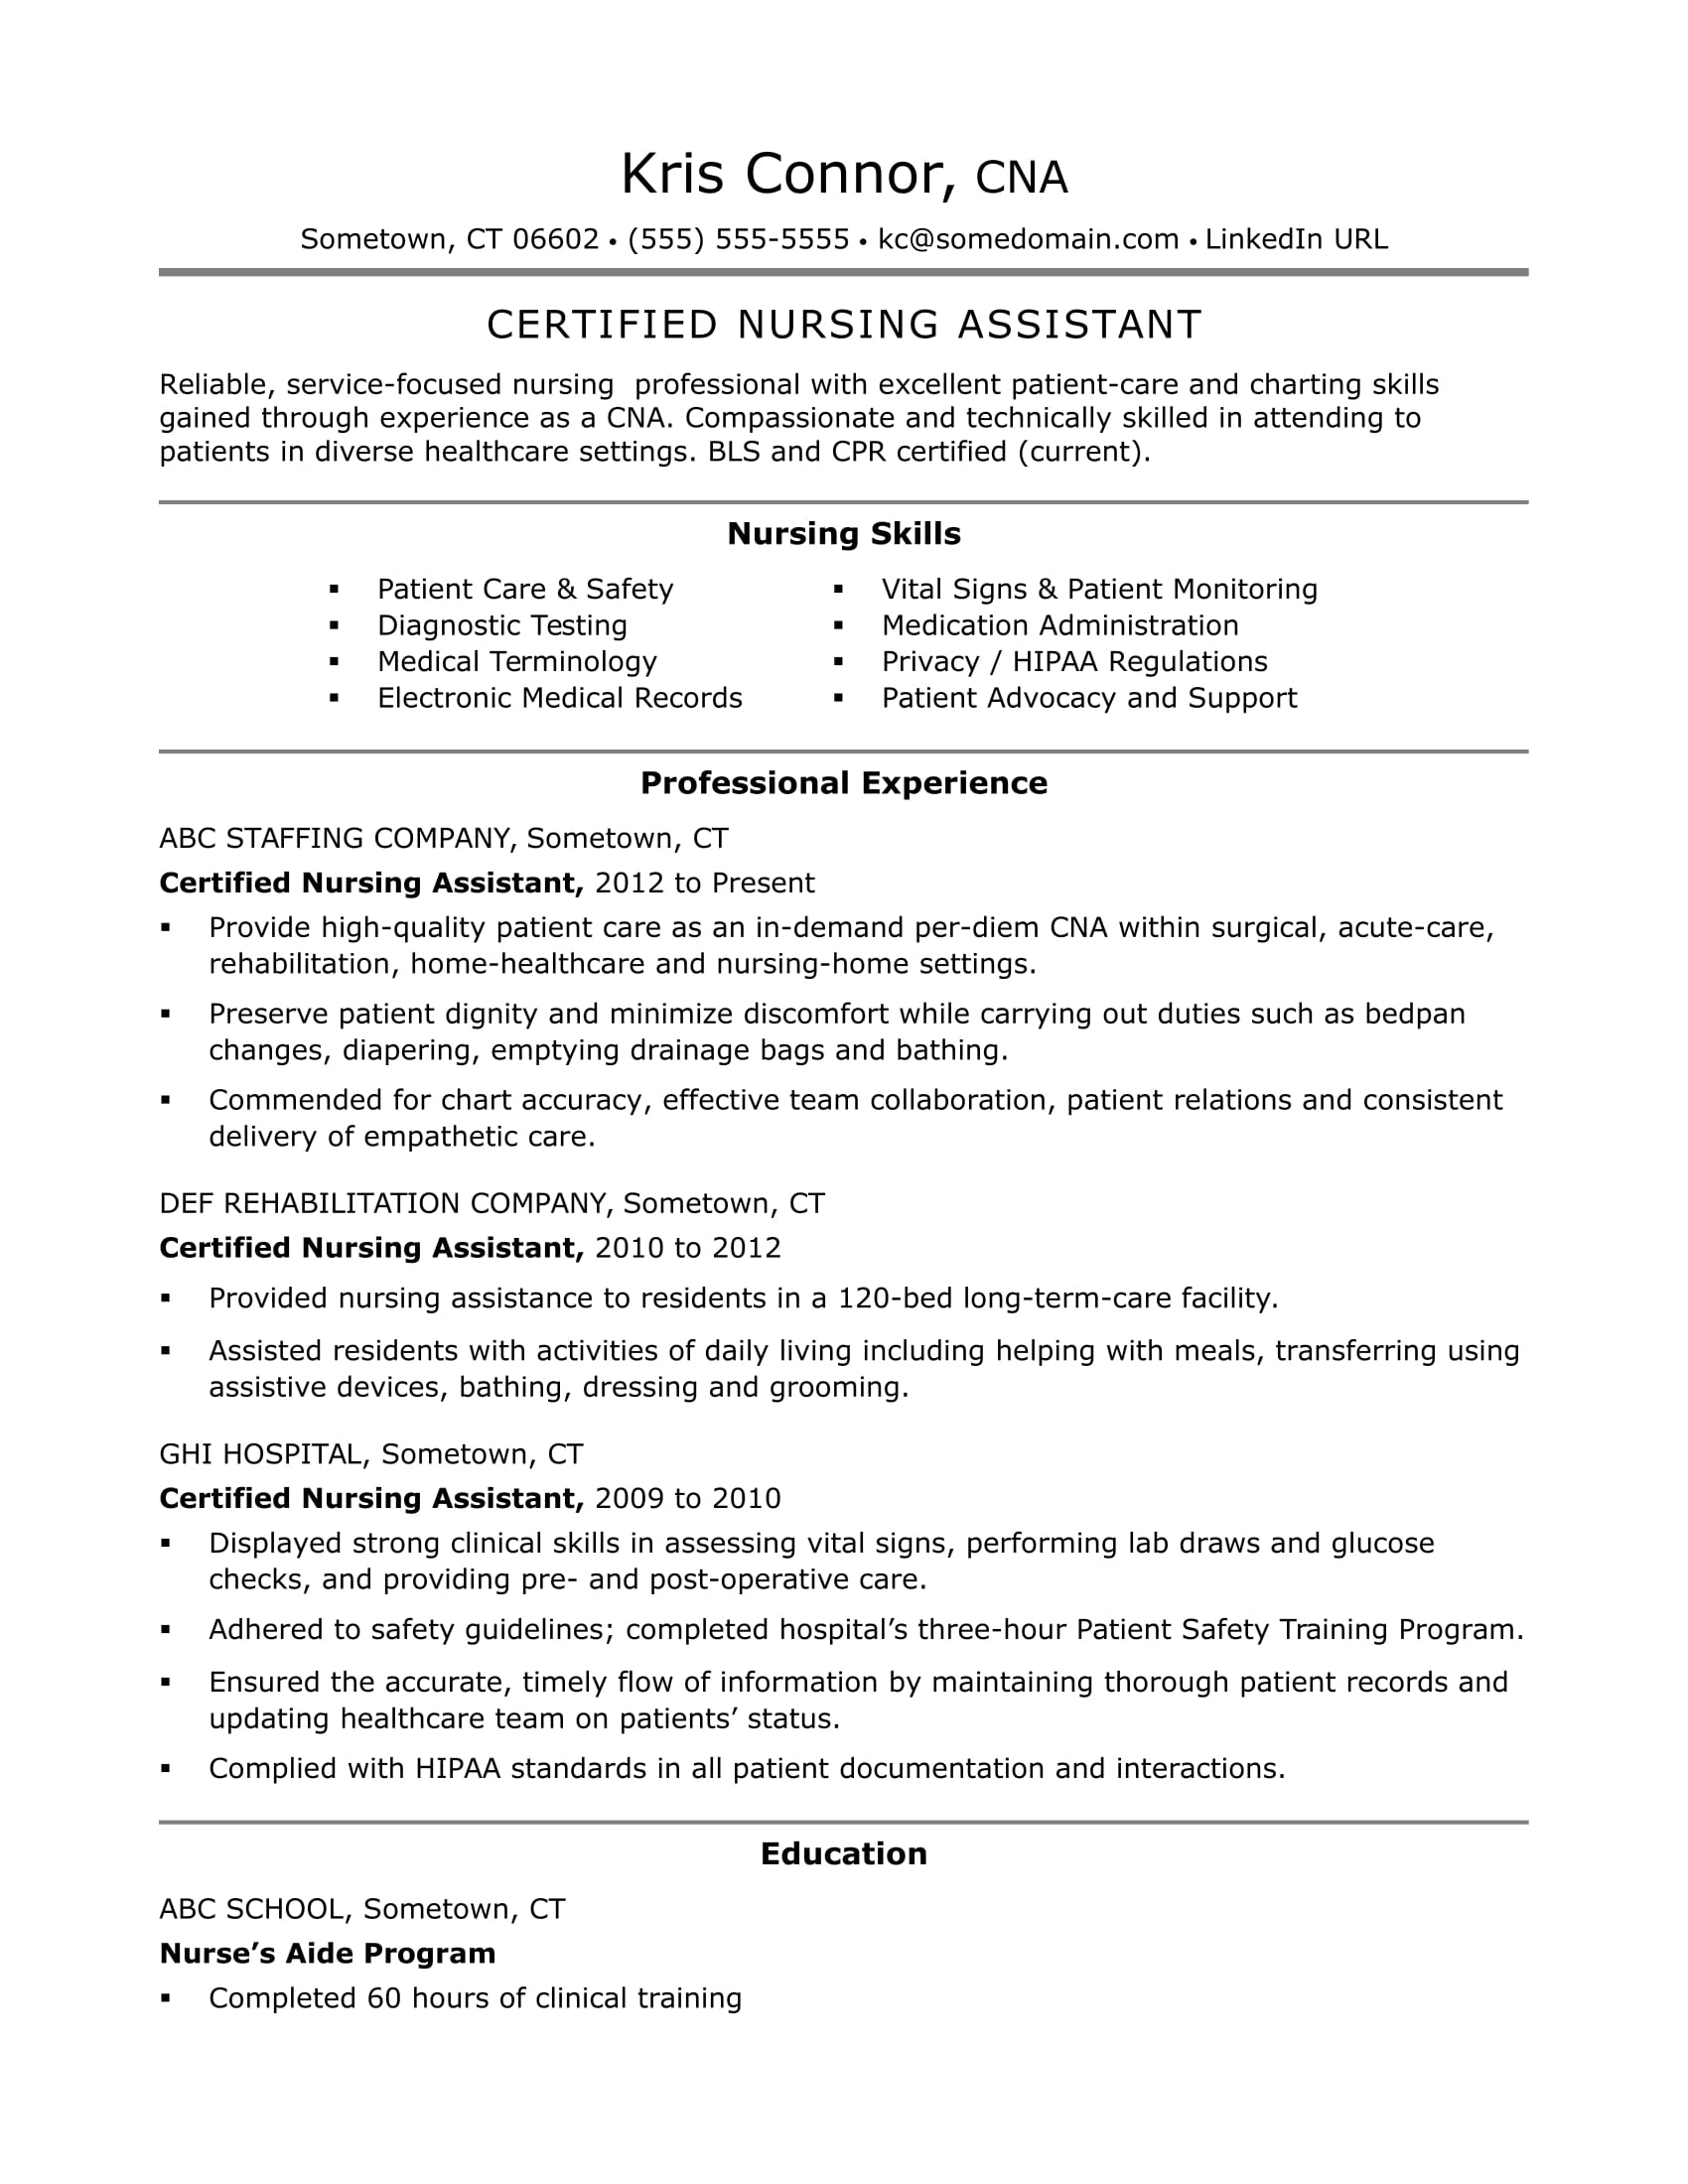 Resume Layout Examples Cna Resume Examples Skills For Cnas Monster